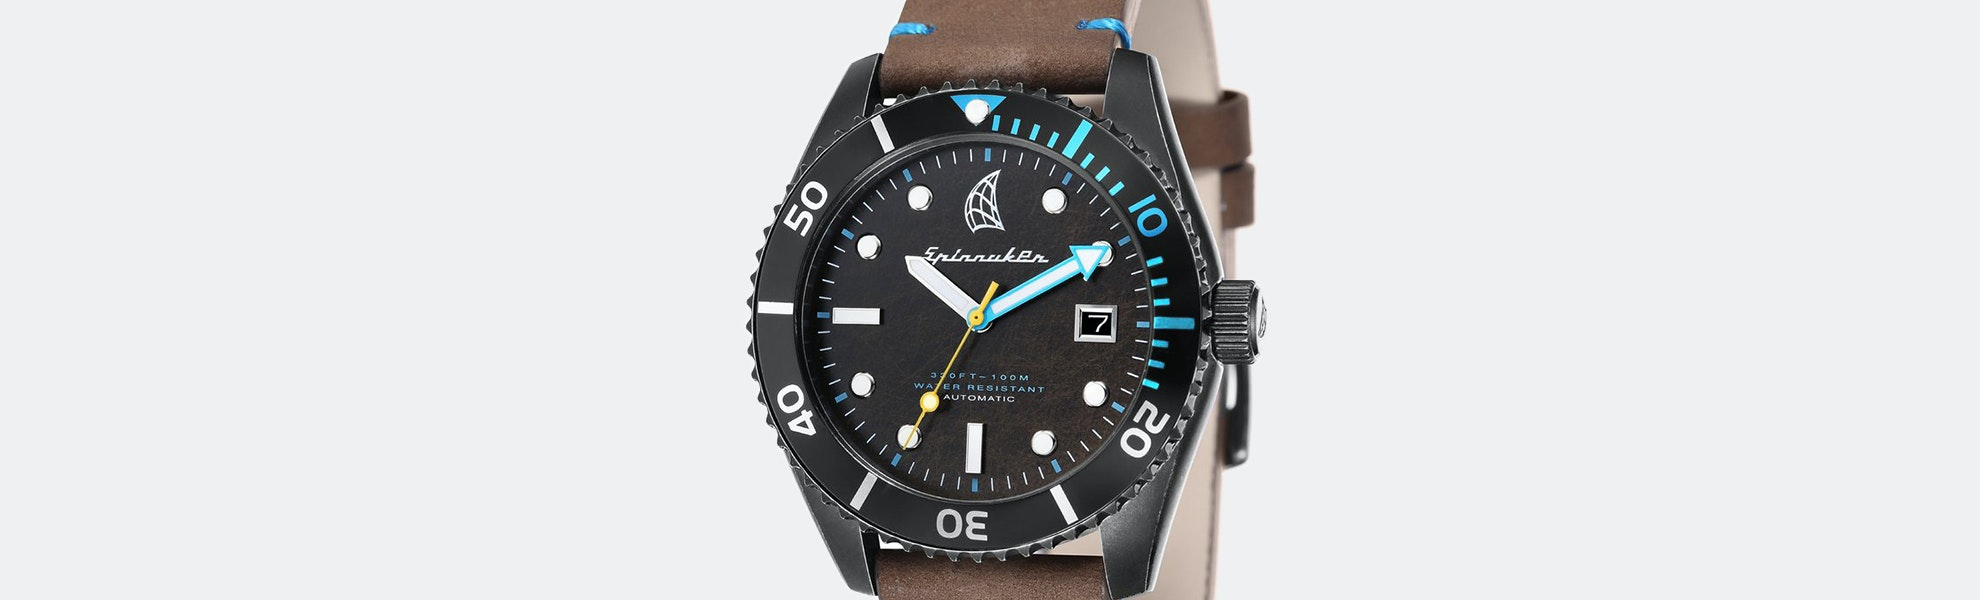 Spinnaker Wreck Automatic Watch